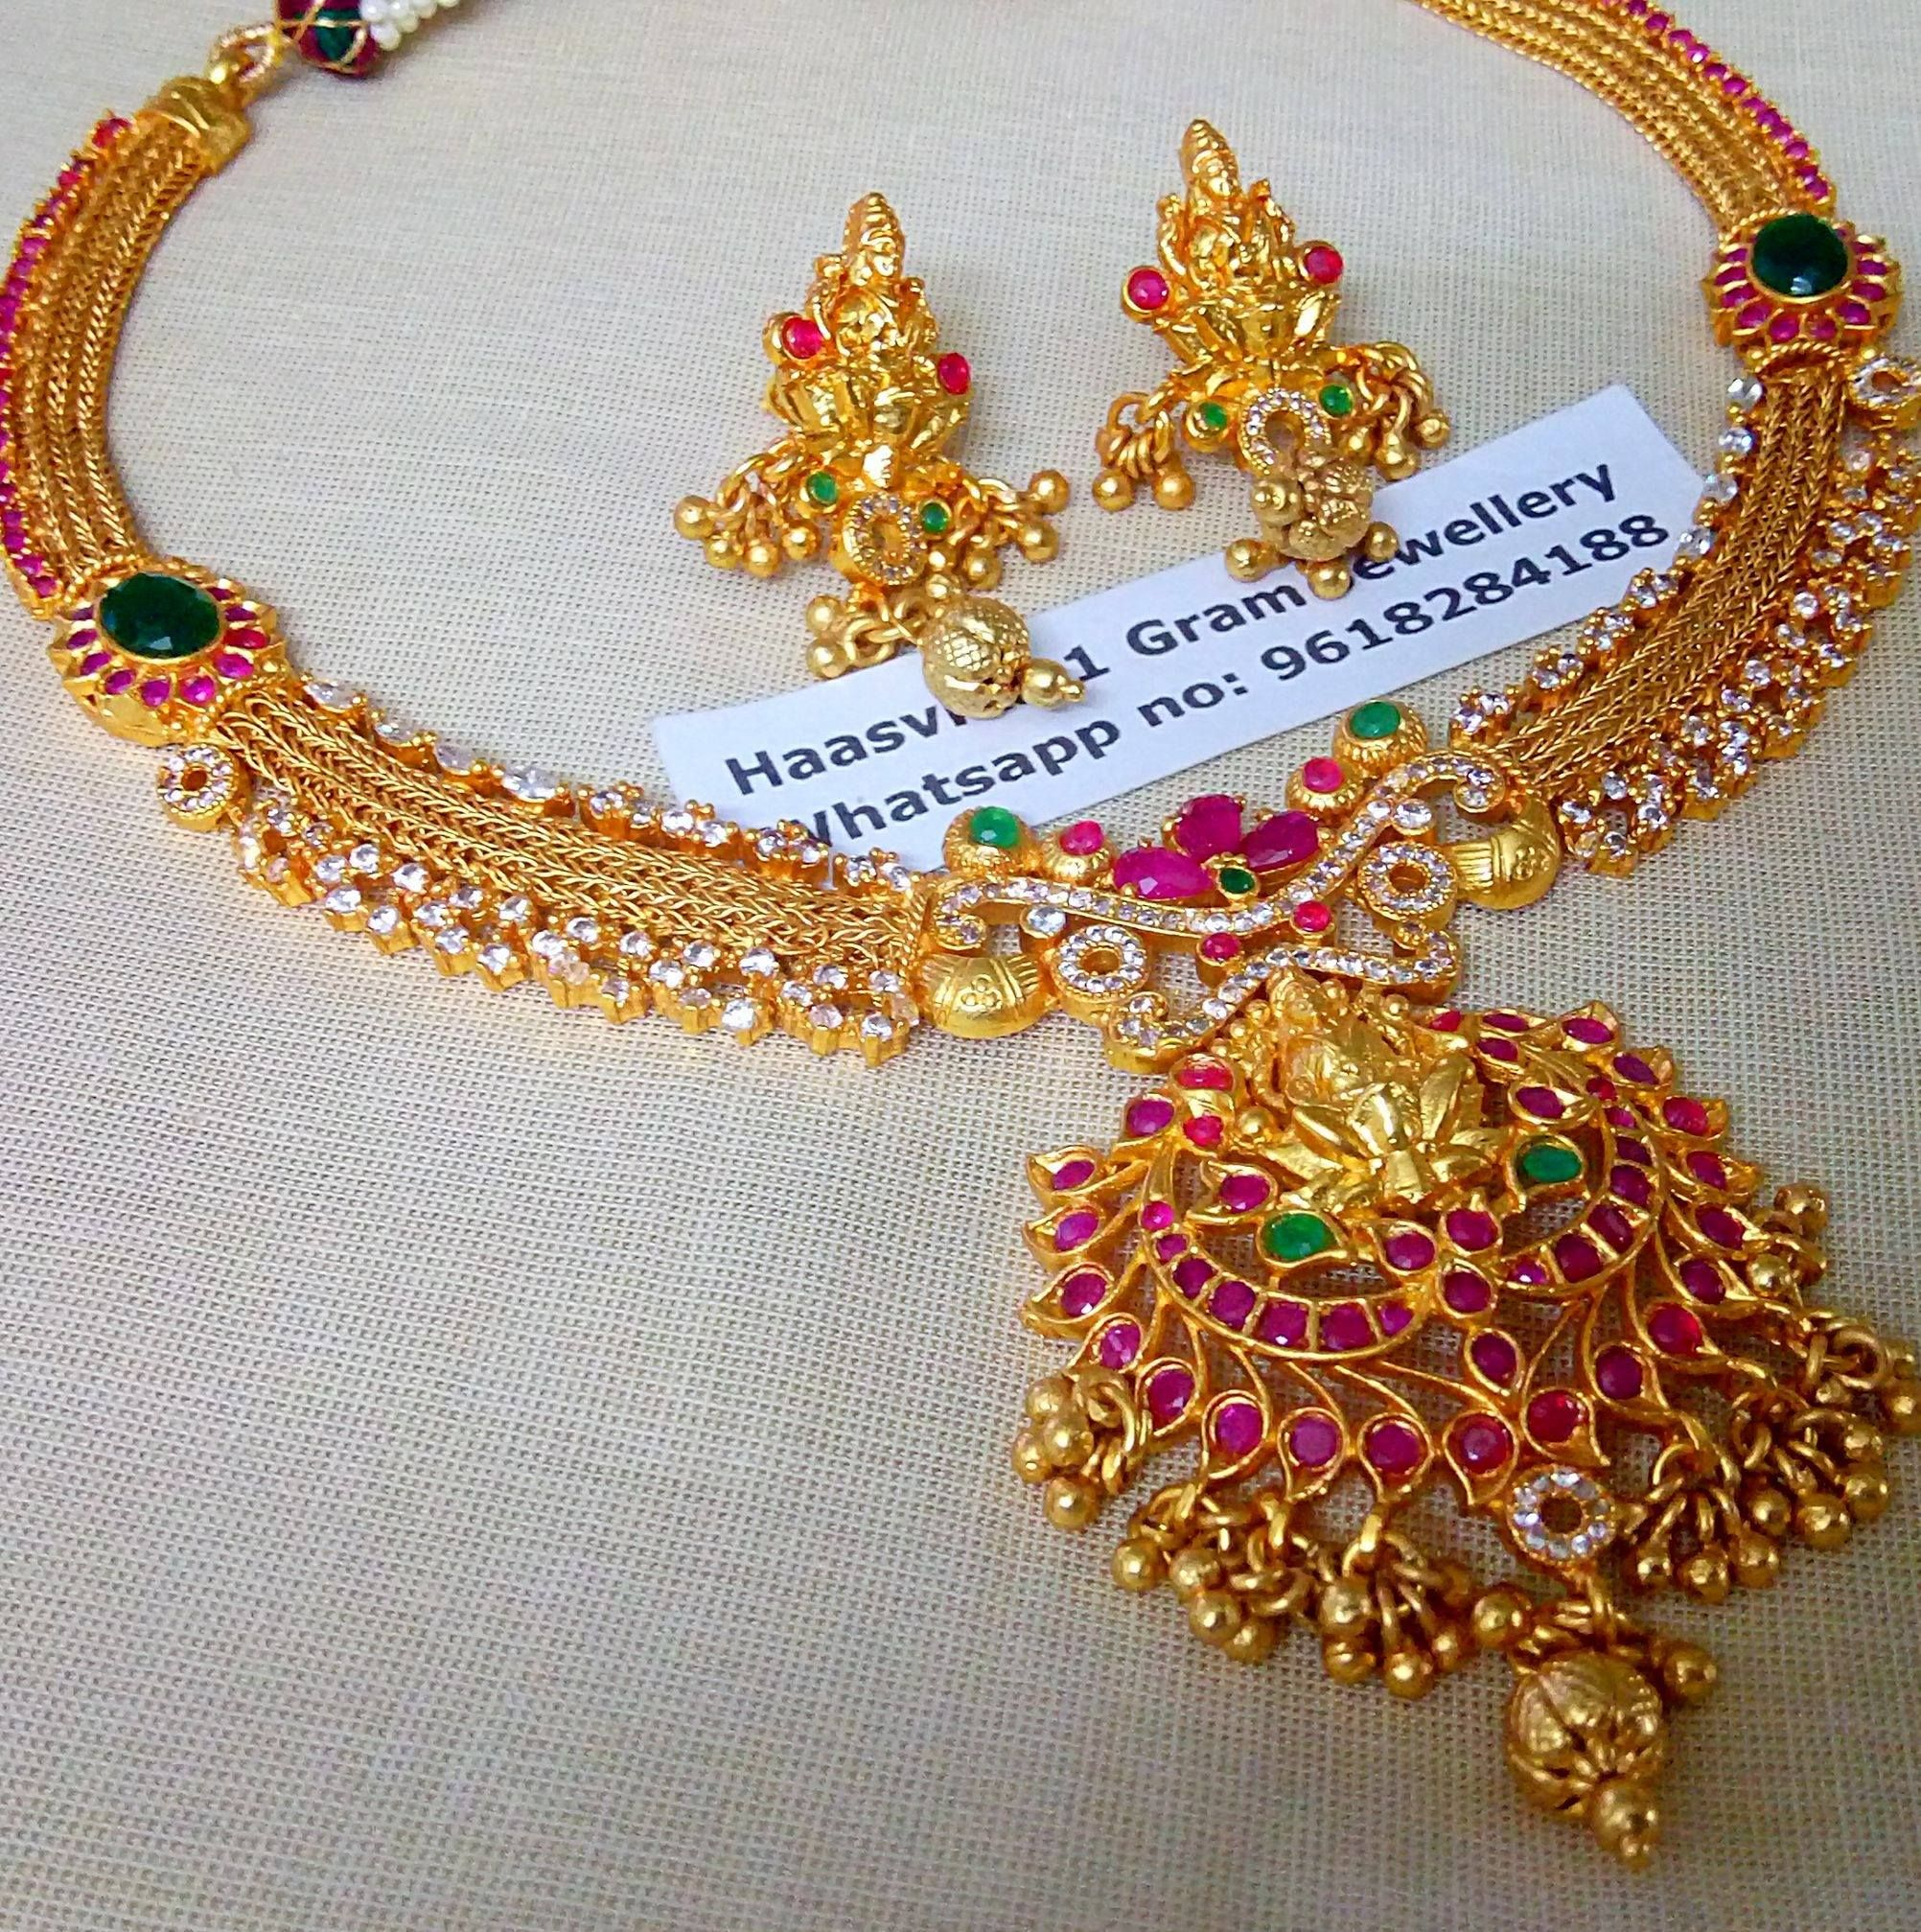 Stunning one gram gold necklace with big lakshmi devi.